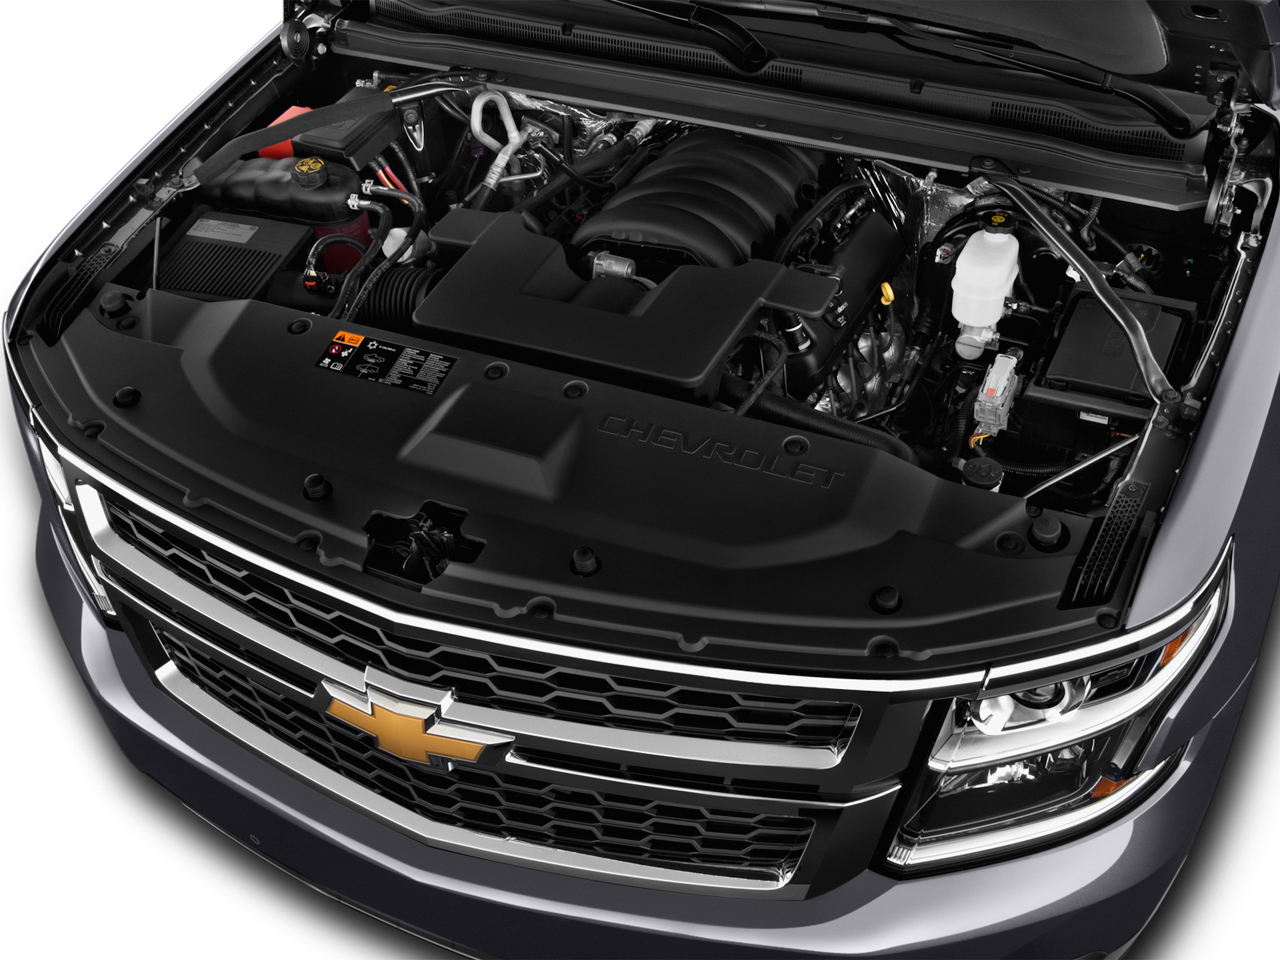 Car Pictures List for Chevrolet Suburban 2019 5.3L LS 2WD ...